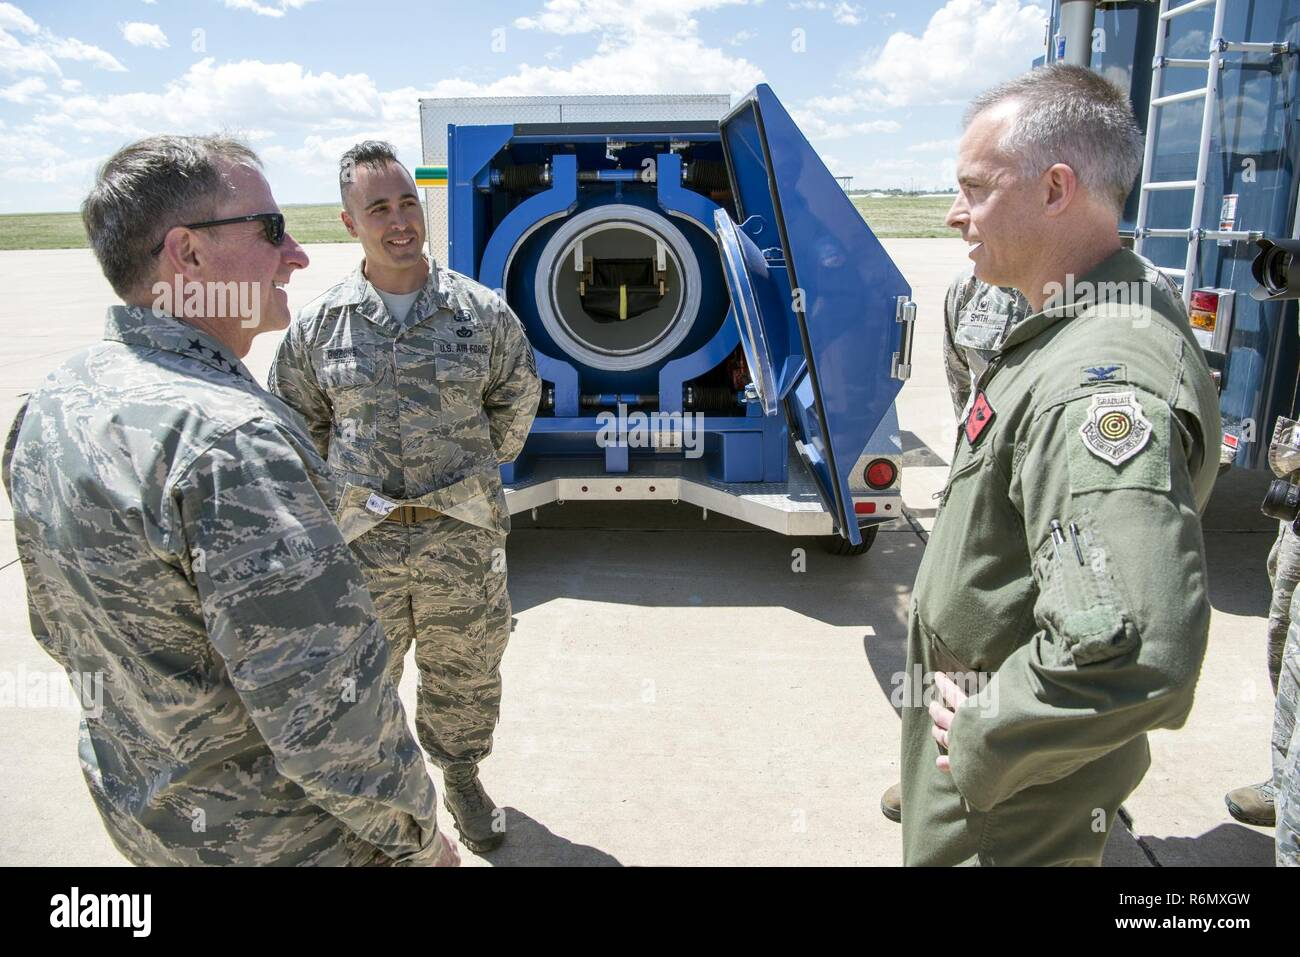 Colorado Air National Guard Senior Master Sgt. Richard F. Gibbons (center) stressed Explosive Ordinance Disposal mission engagement in the local area to U.S. Air Force Chief of Staff General David L. Goldfein. General Goldfein visited Buckley Air Force Base, Colo. and toured several static displays May 25, 2017. The 140th Wing, Colorado Air National Guard took the opportunity to showcase assets from their various missions to include the F-16C Fighting Falcon aircraft, the Mission Vehicle and Communications Vehicle from the 233d Space Group's Mobile Ground System, the 140th Explosive Ordnance D - Stock Image